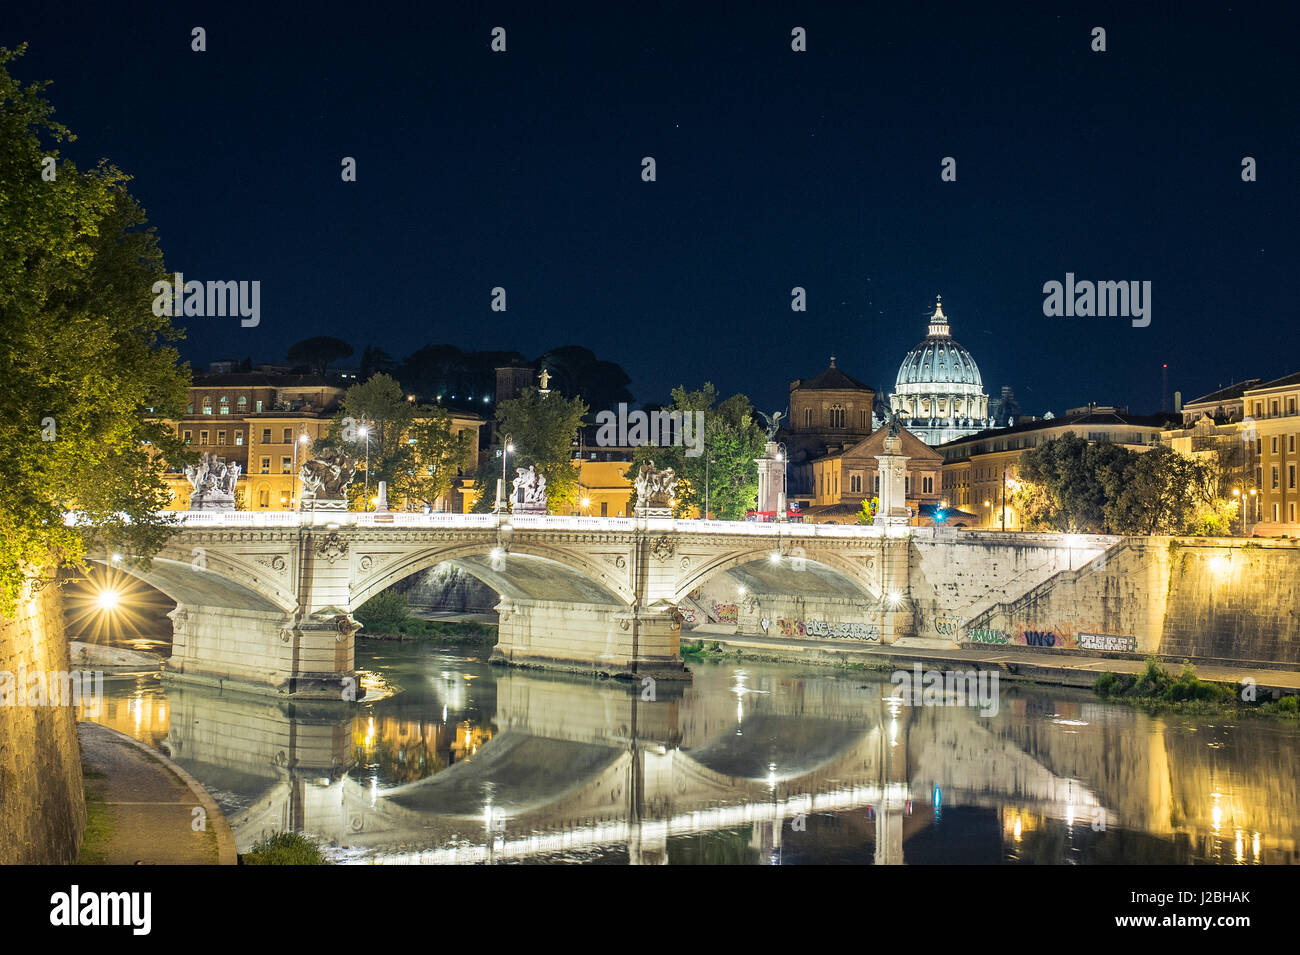 Vatican City, Rome, Italy, Beautiful Vibrant Night image Panorama of St. Peter's Basilica, Ponte St. Angelo - Stock Image